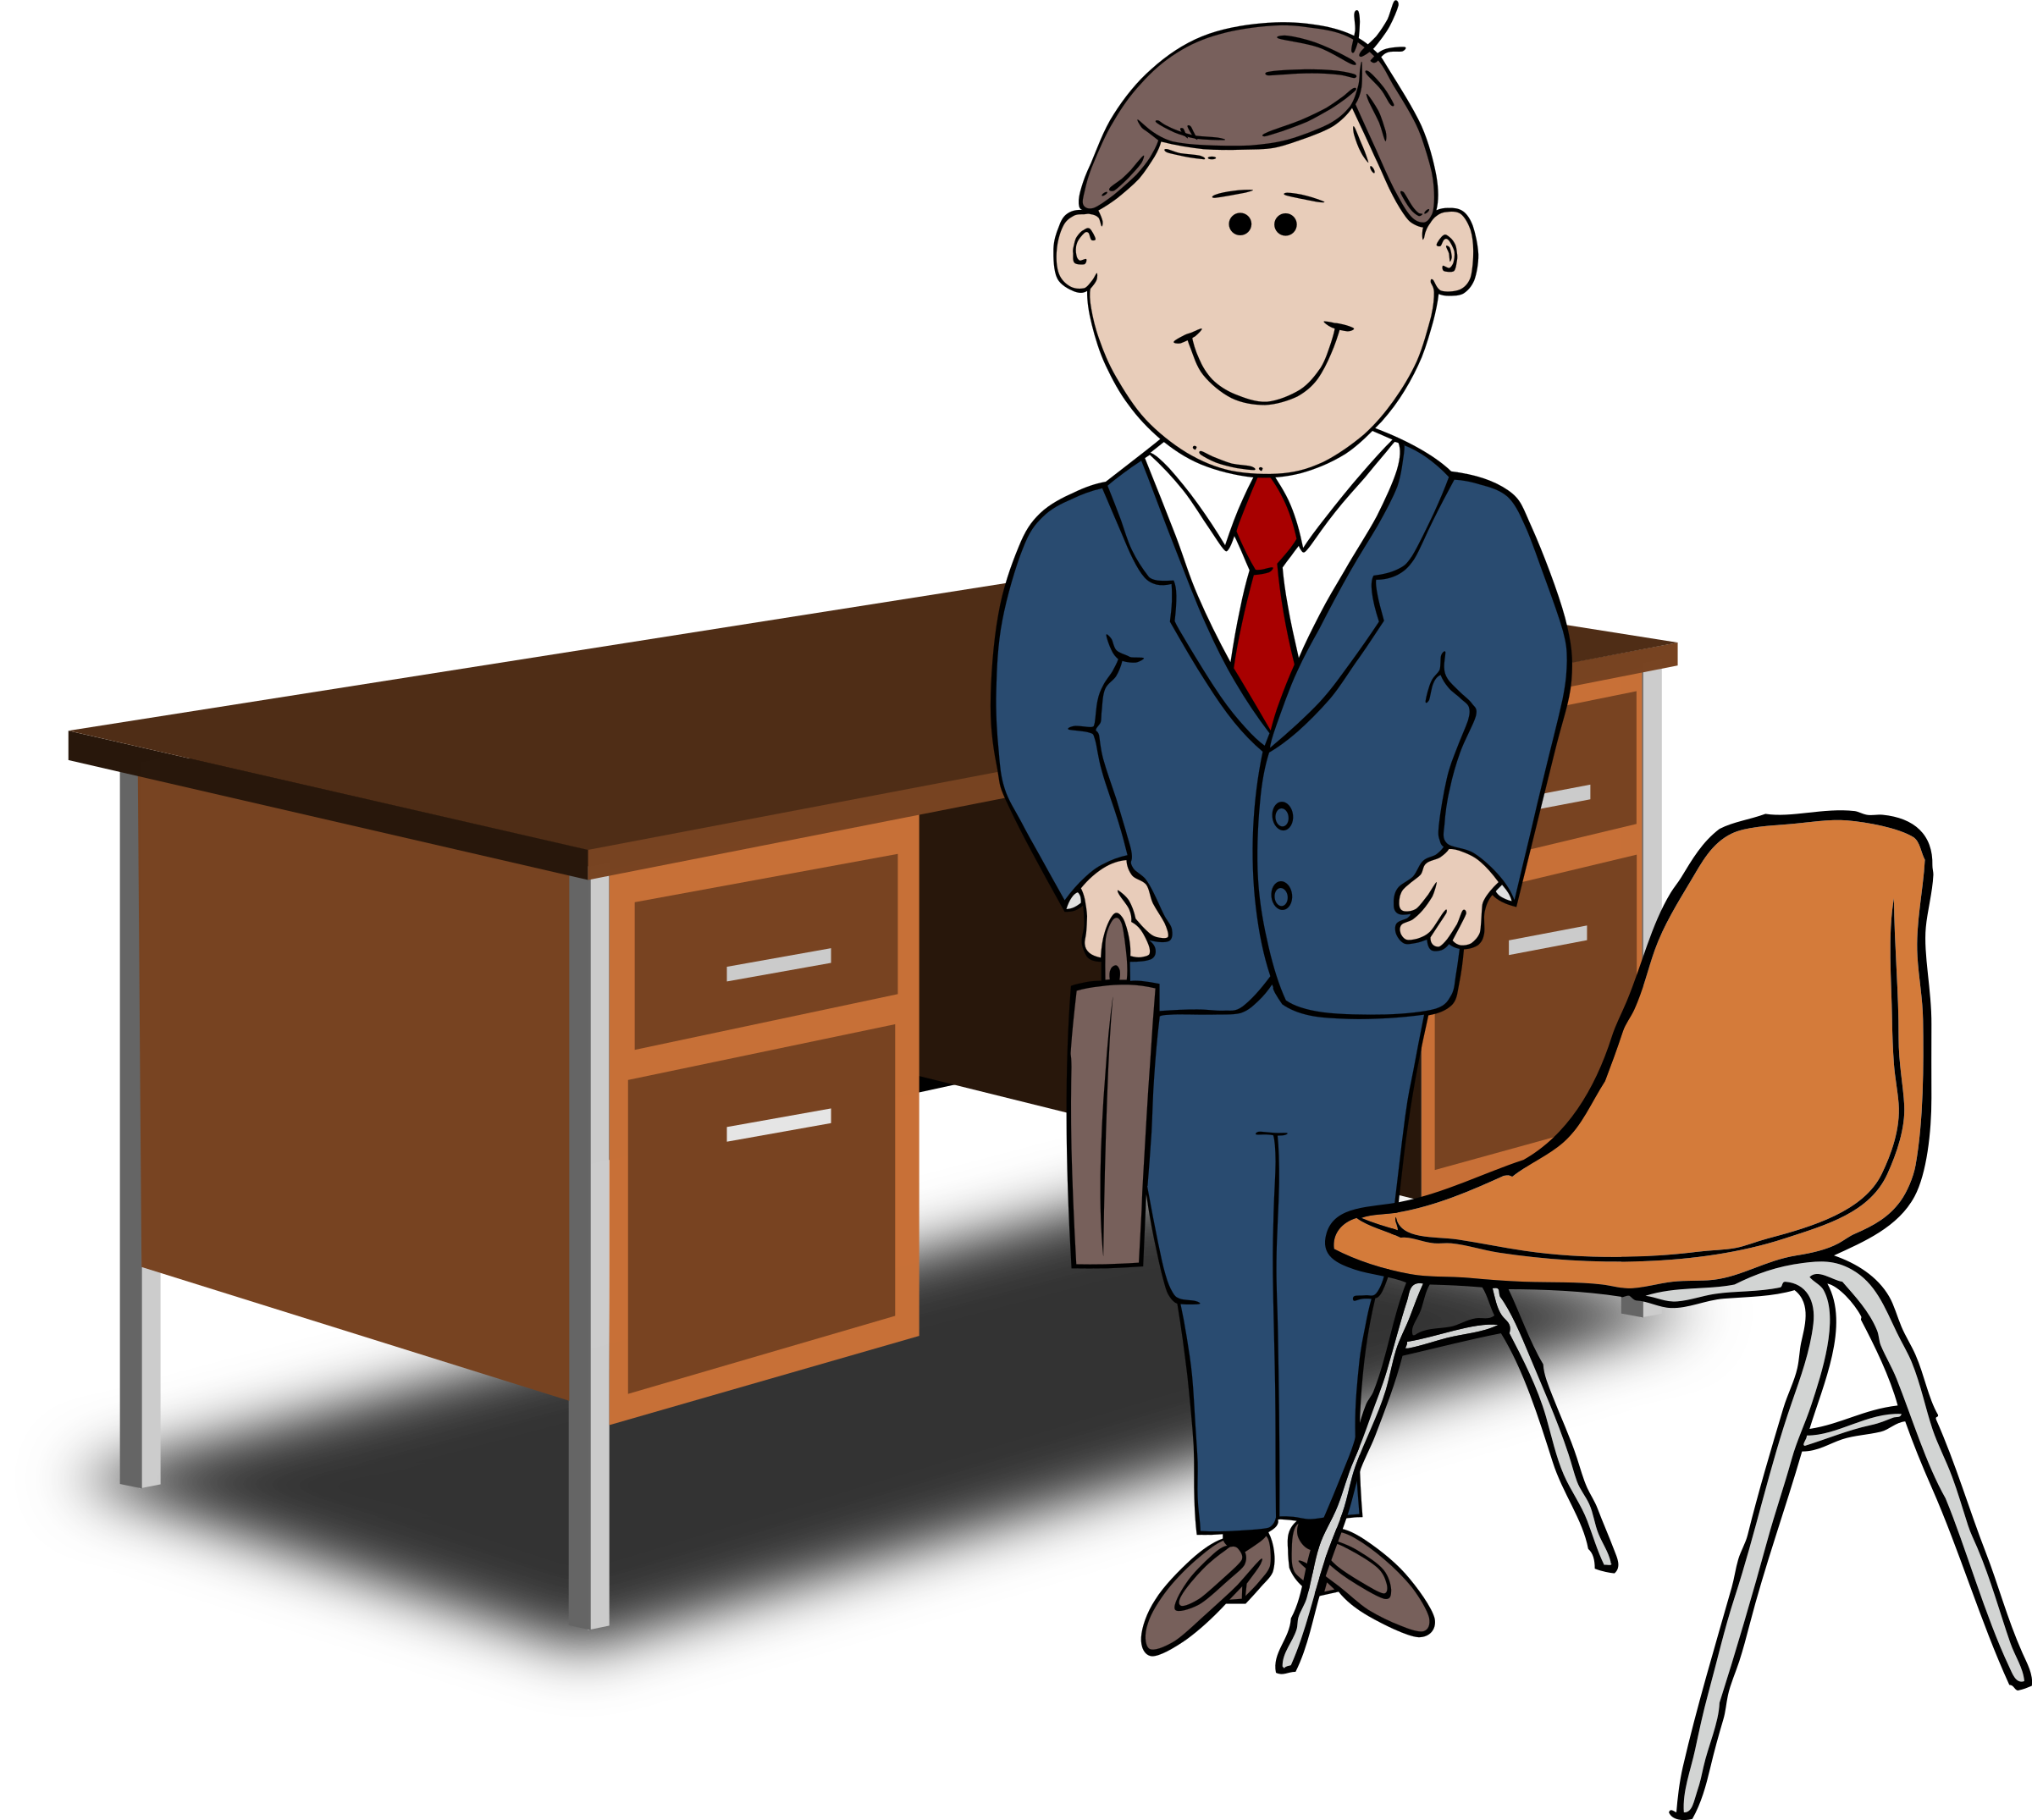 Schreibtisch clipart  Clipart - Teacher / Manager between chair and desk